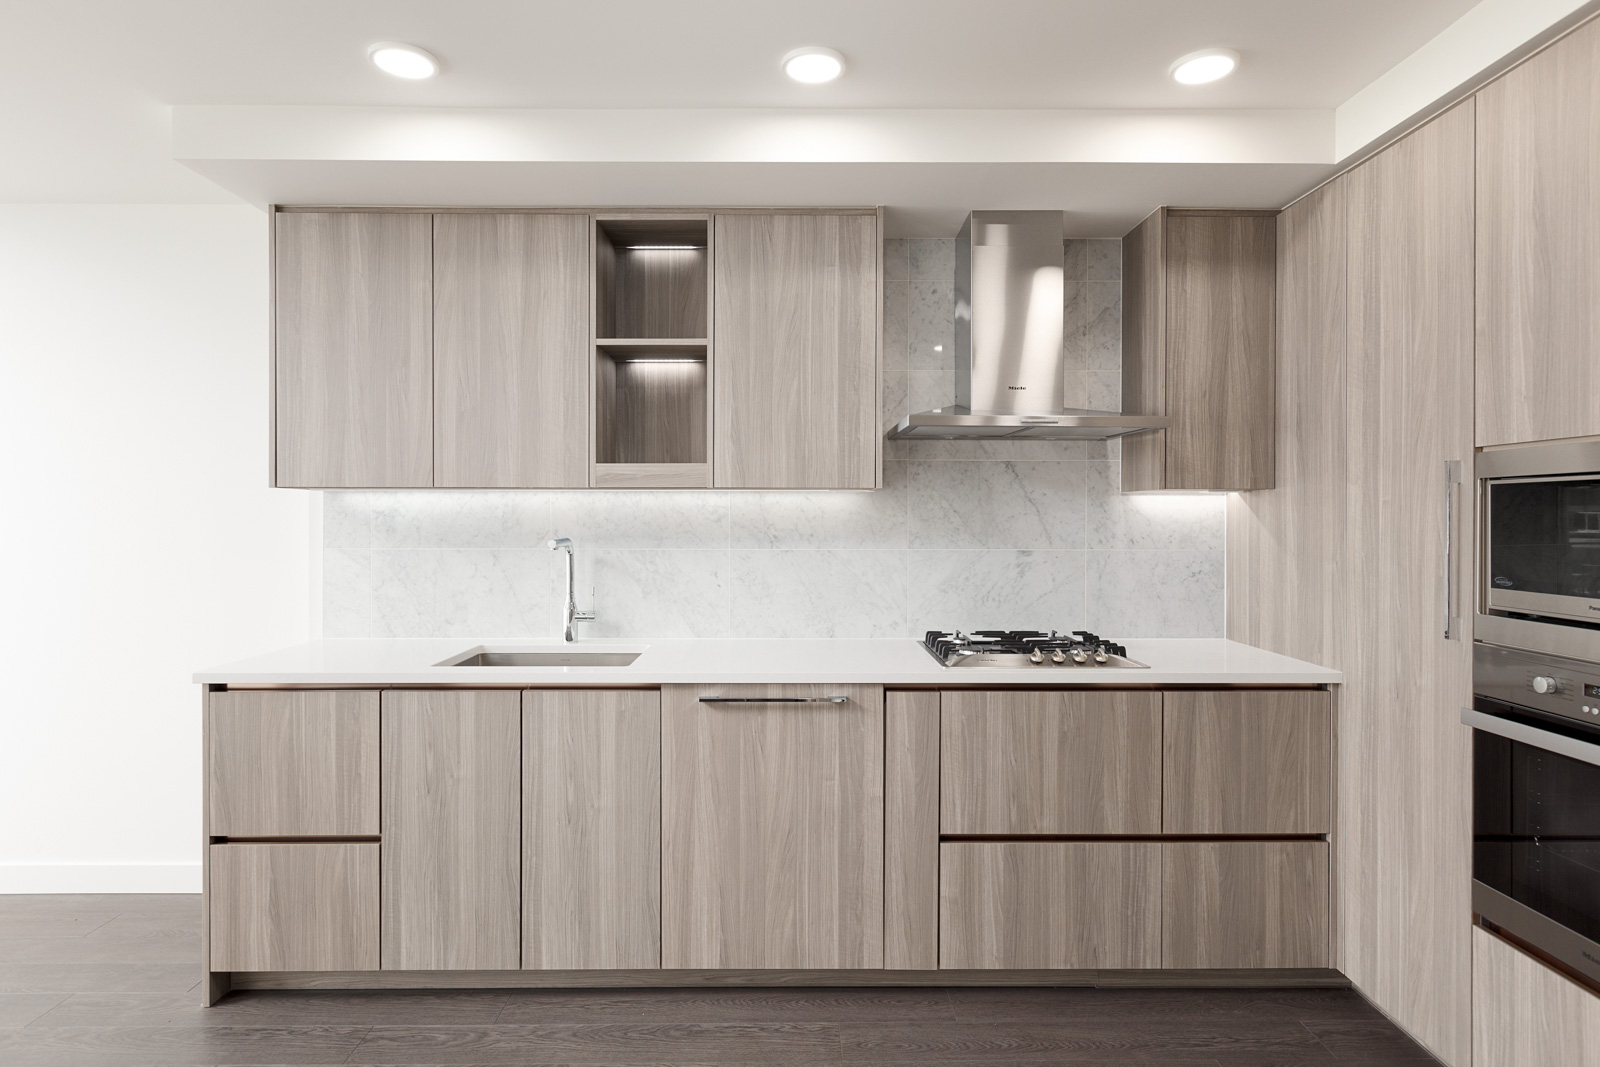 New Condo Kitchen at SW Marine and Cambie